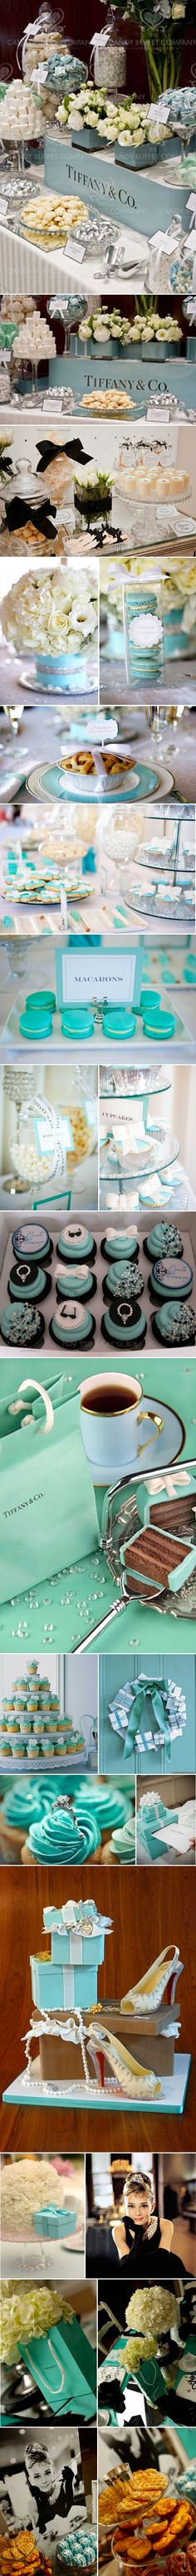 Breakfast at Tiffany themed Wedding/Wedding Shower